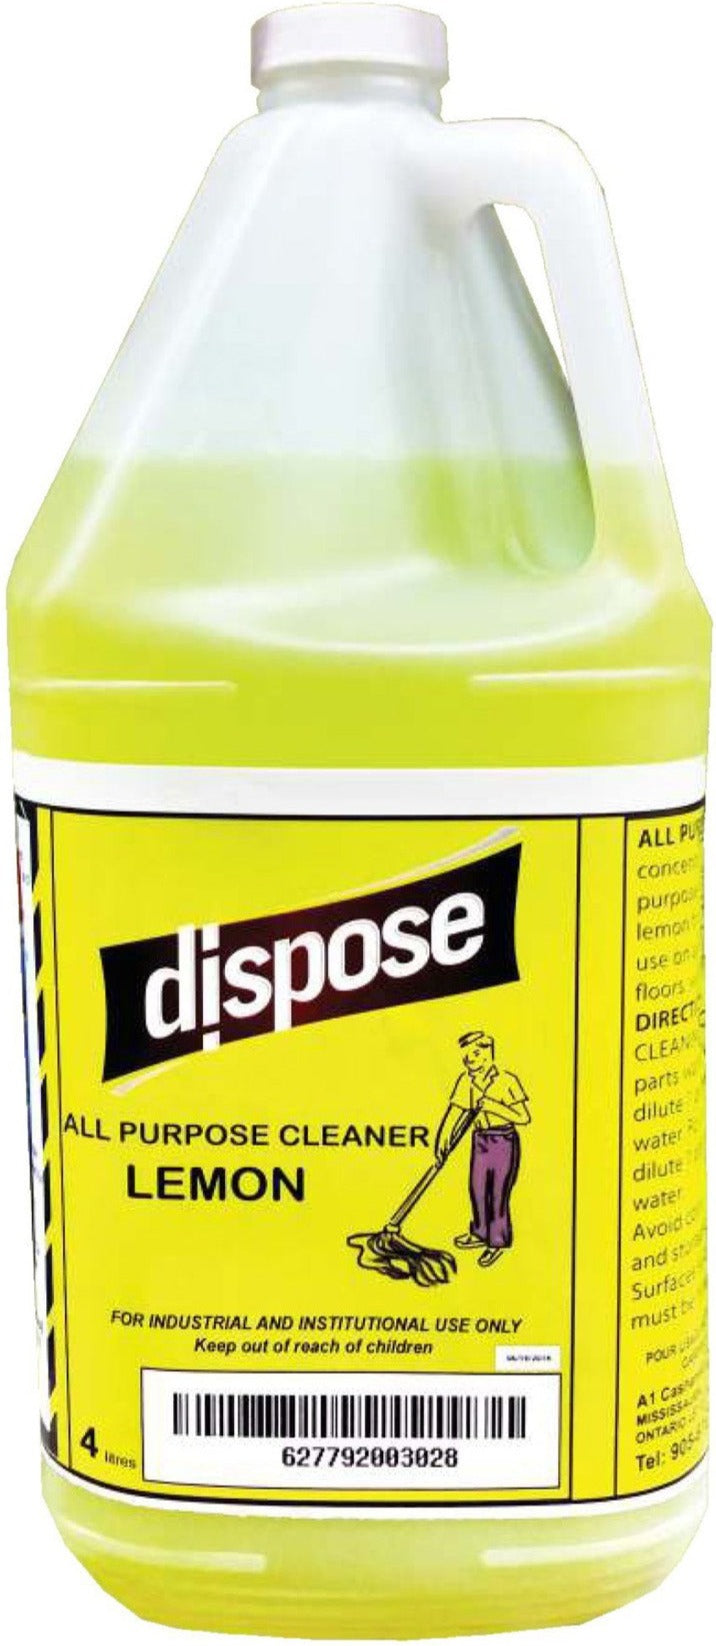 Dispose - All Purpose Cleaner - Lemon